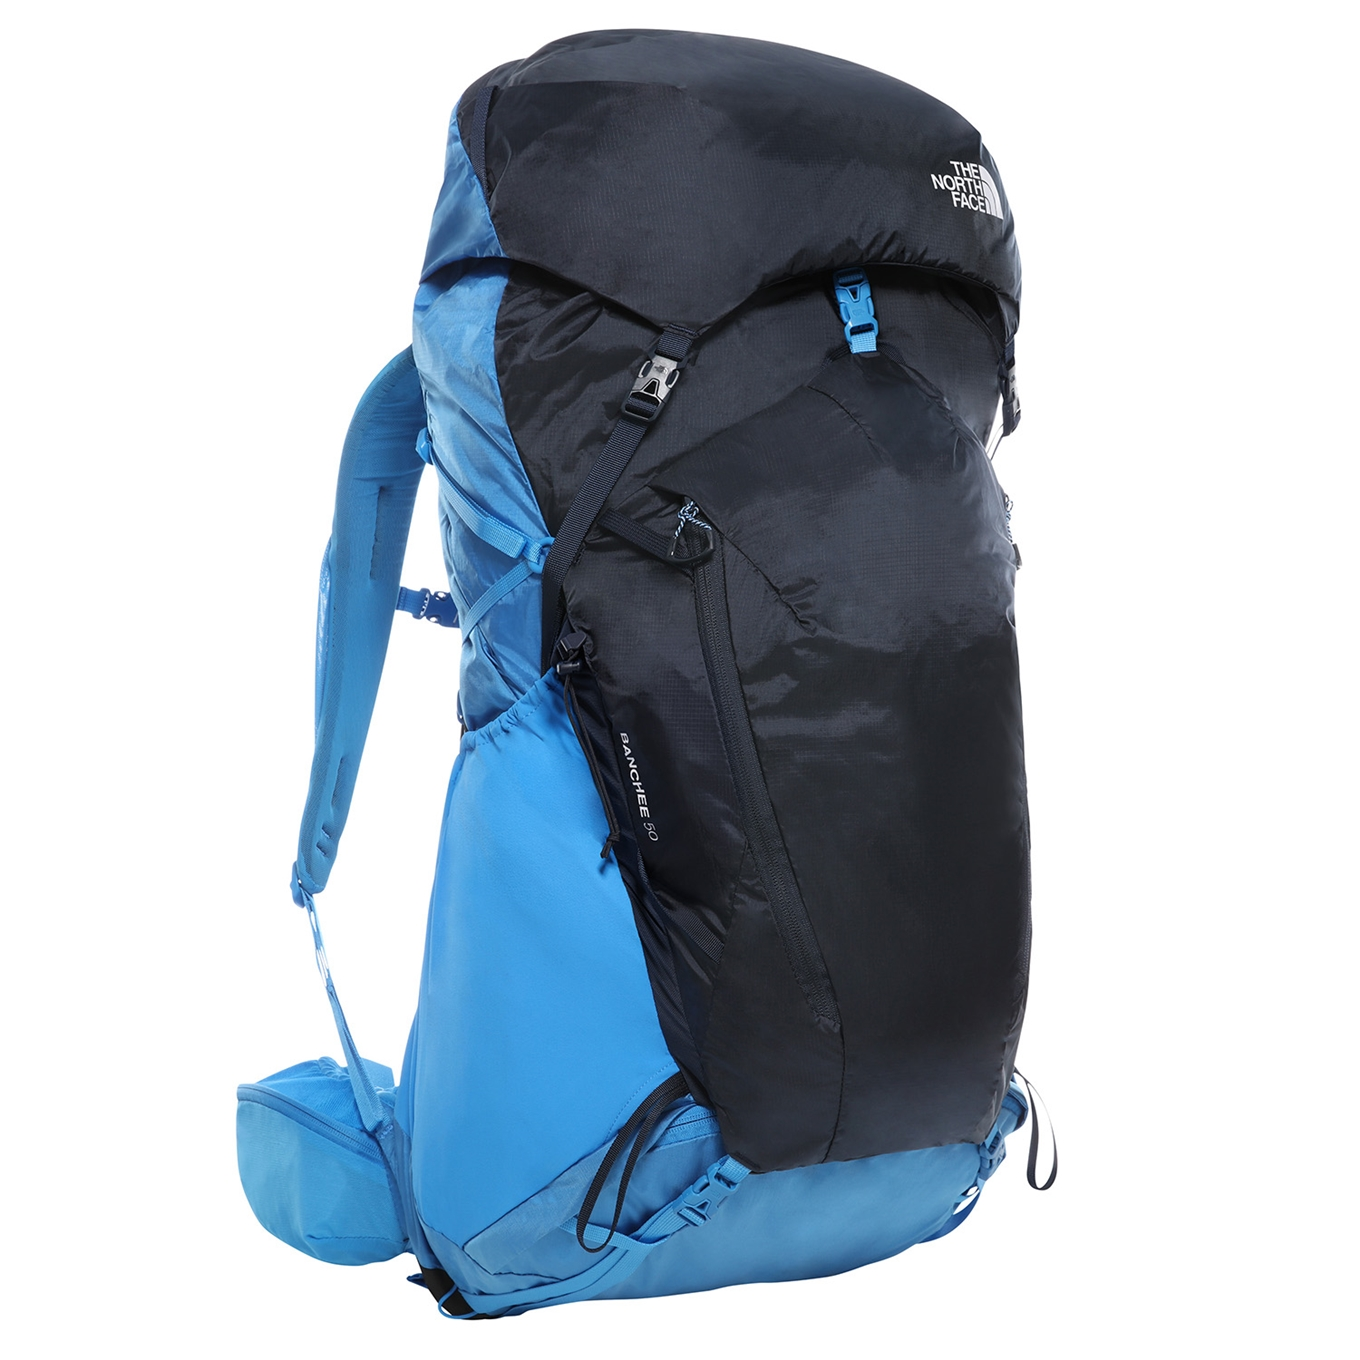 The North Face Banchee 65 Backpack L/XL clear lake blue / urban navy backpack <br/></noscript><img class=